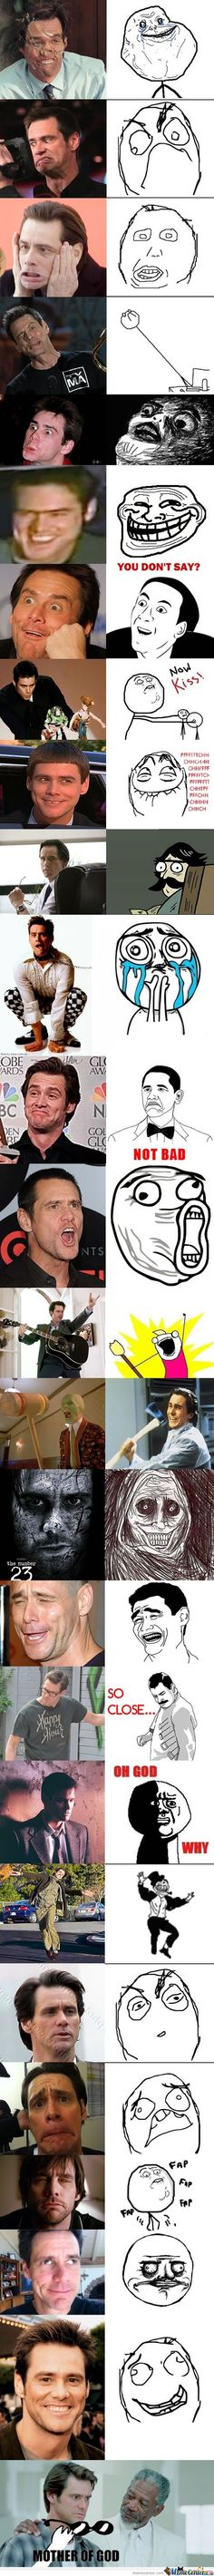 Jim Carrey & Rage Faces - Meme Center